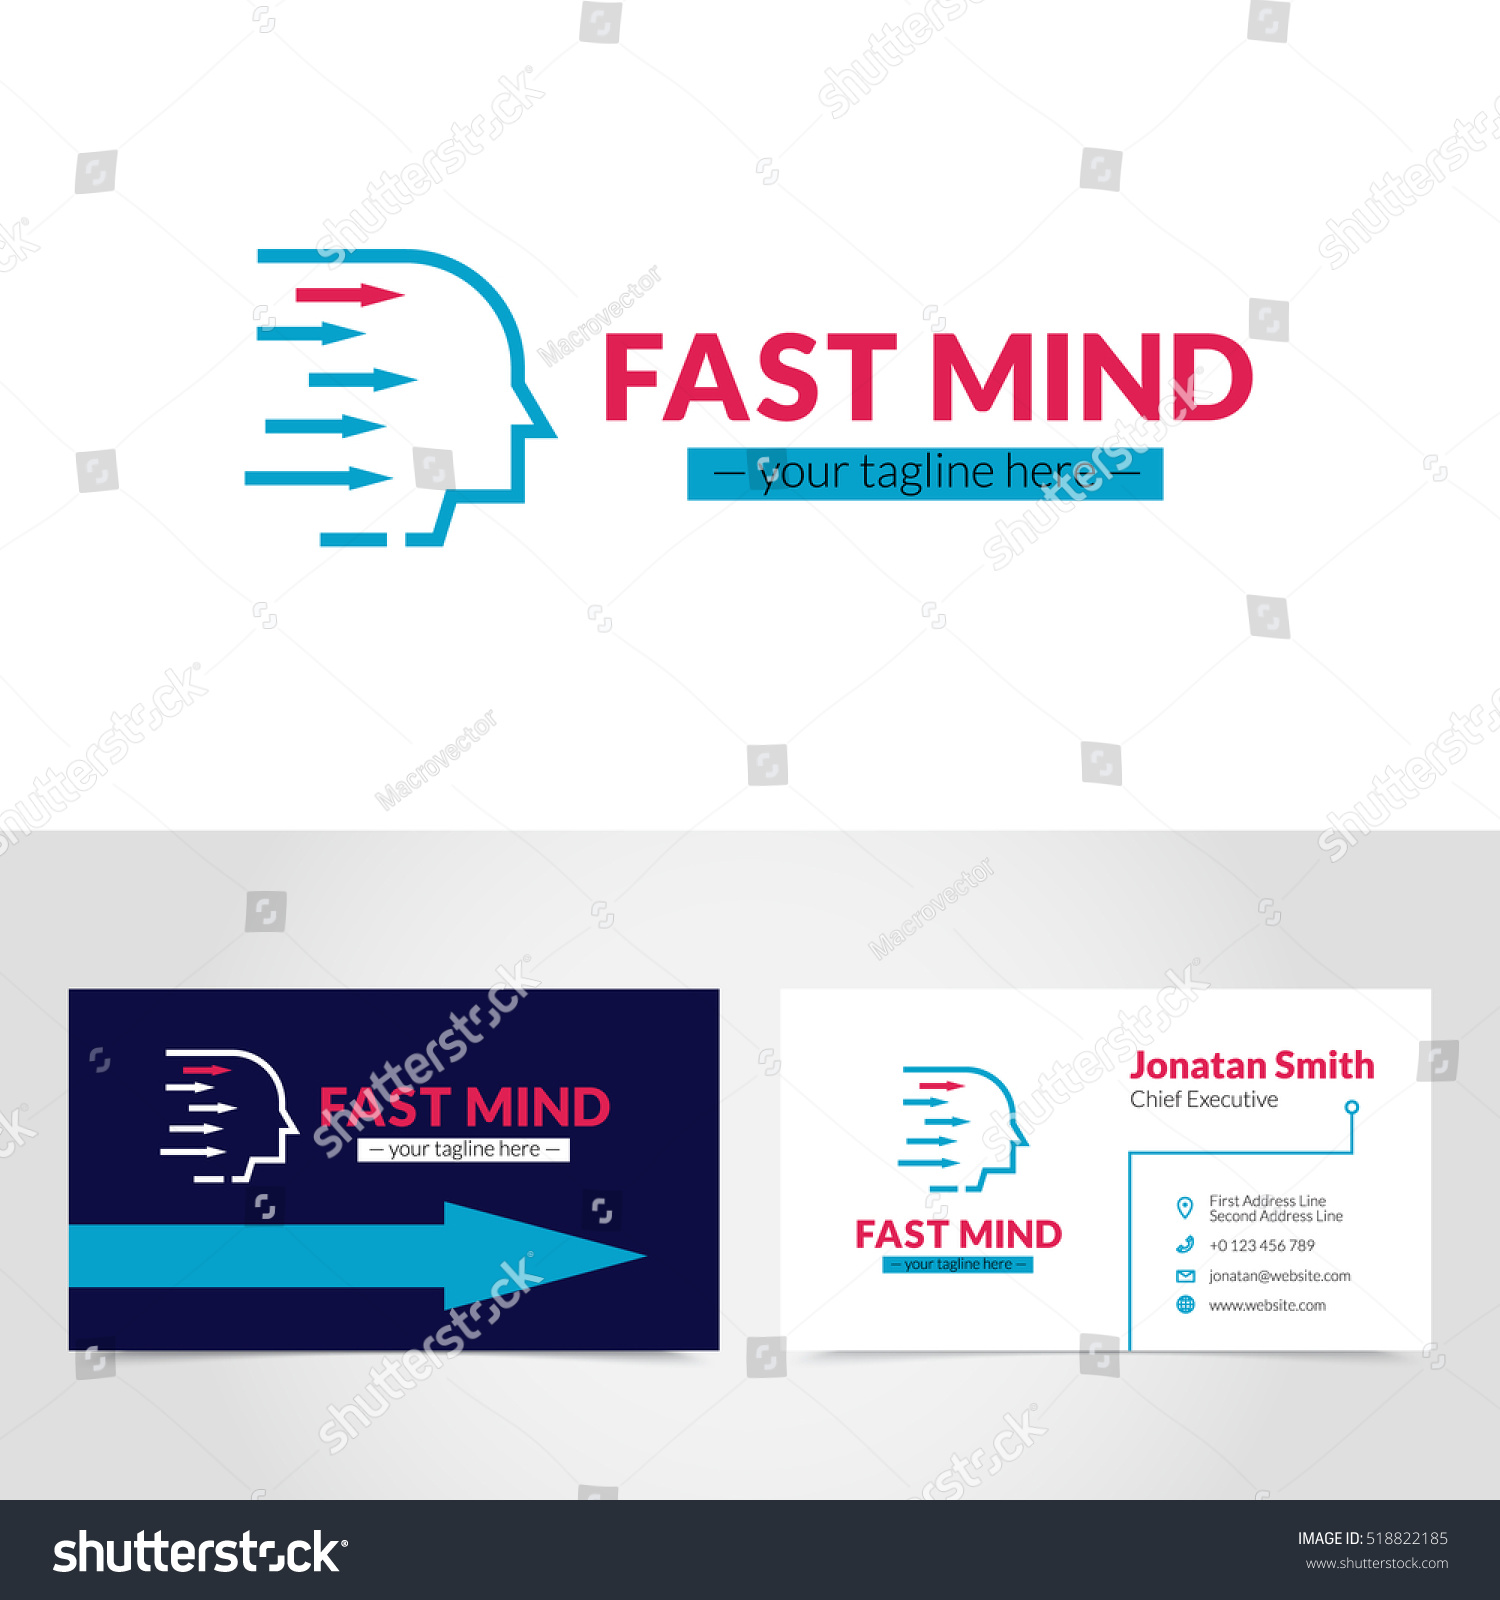 Create Business Cards Online Uk Gallery - Card Design And Card Template